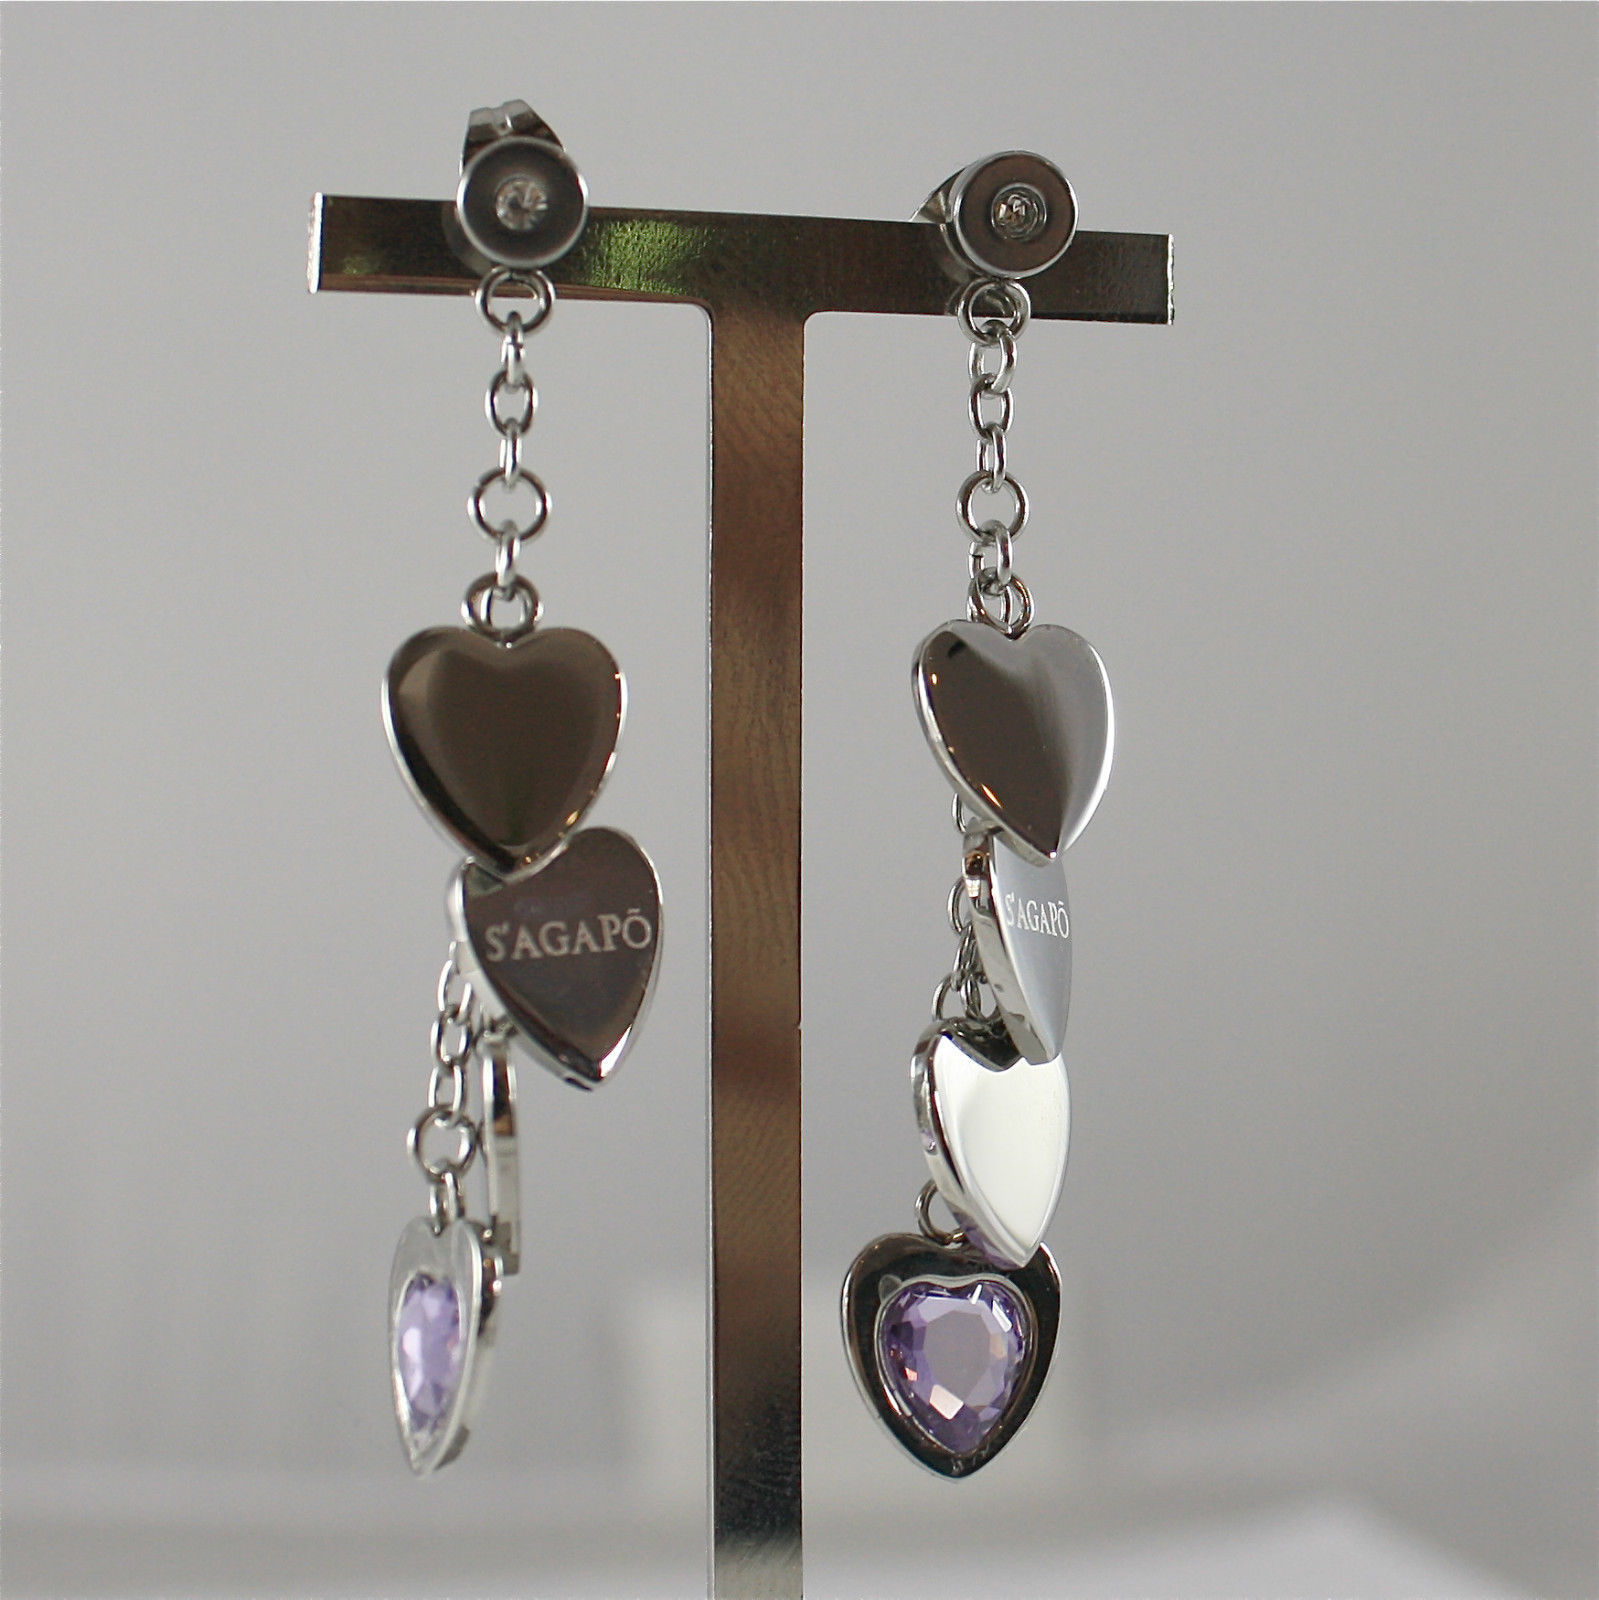 S'AGAPO' EARRINGS, 316L STEEL, HEARTS, FACETED PURPLE CRYSTALS.